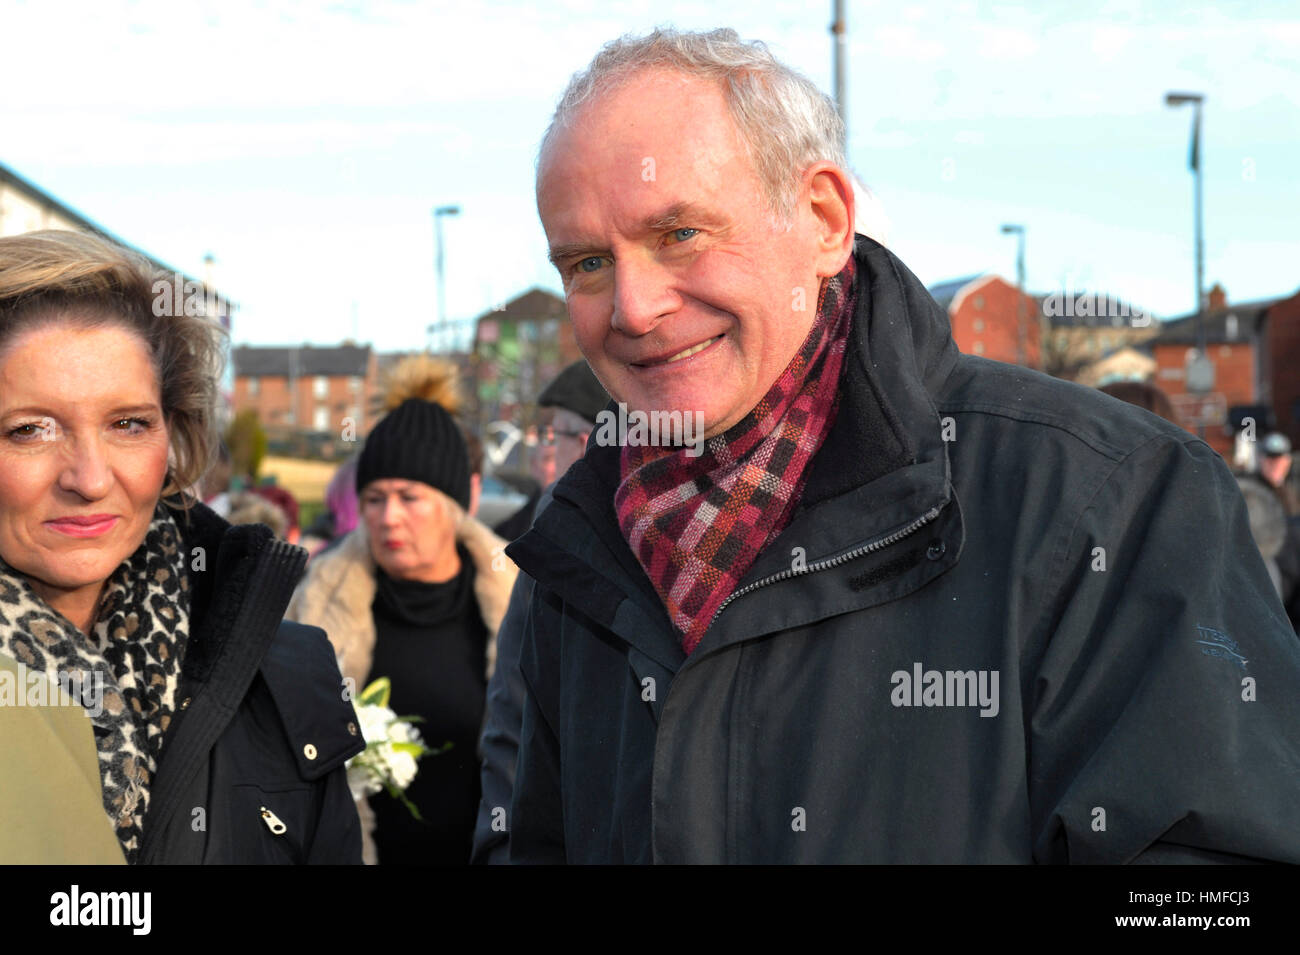 Martin McGuinness, Sinn Fein, at the 45th Bloody Sunday memorial service in Derry, Londonderry. Stock Photo